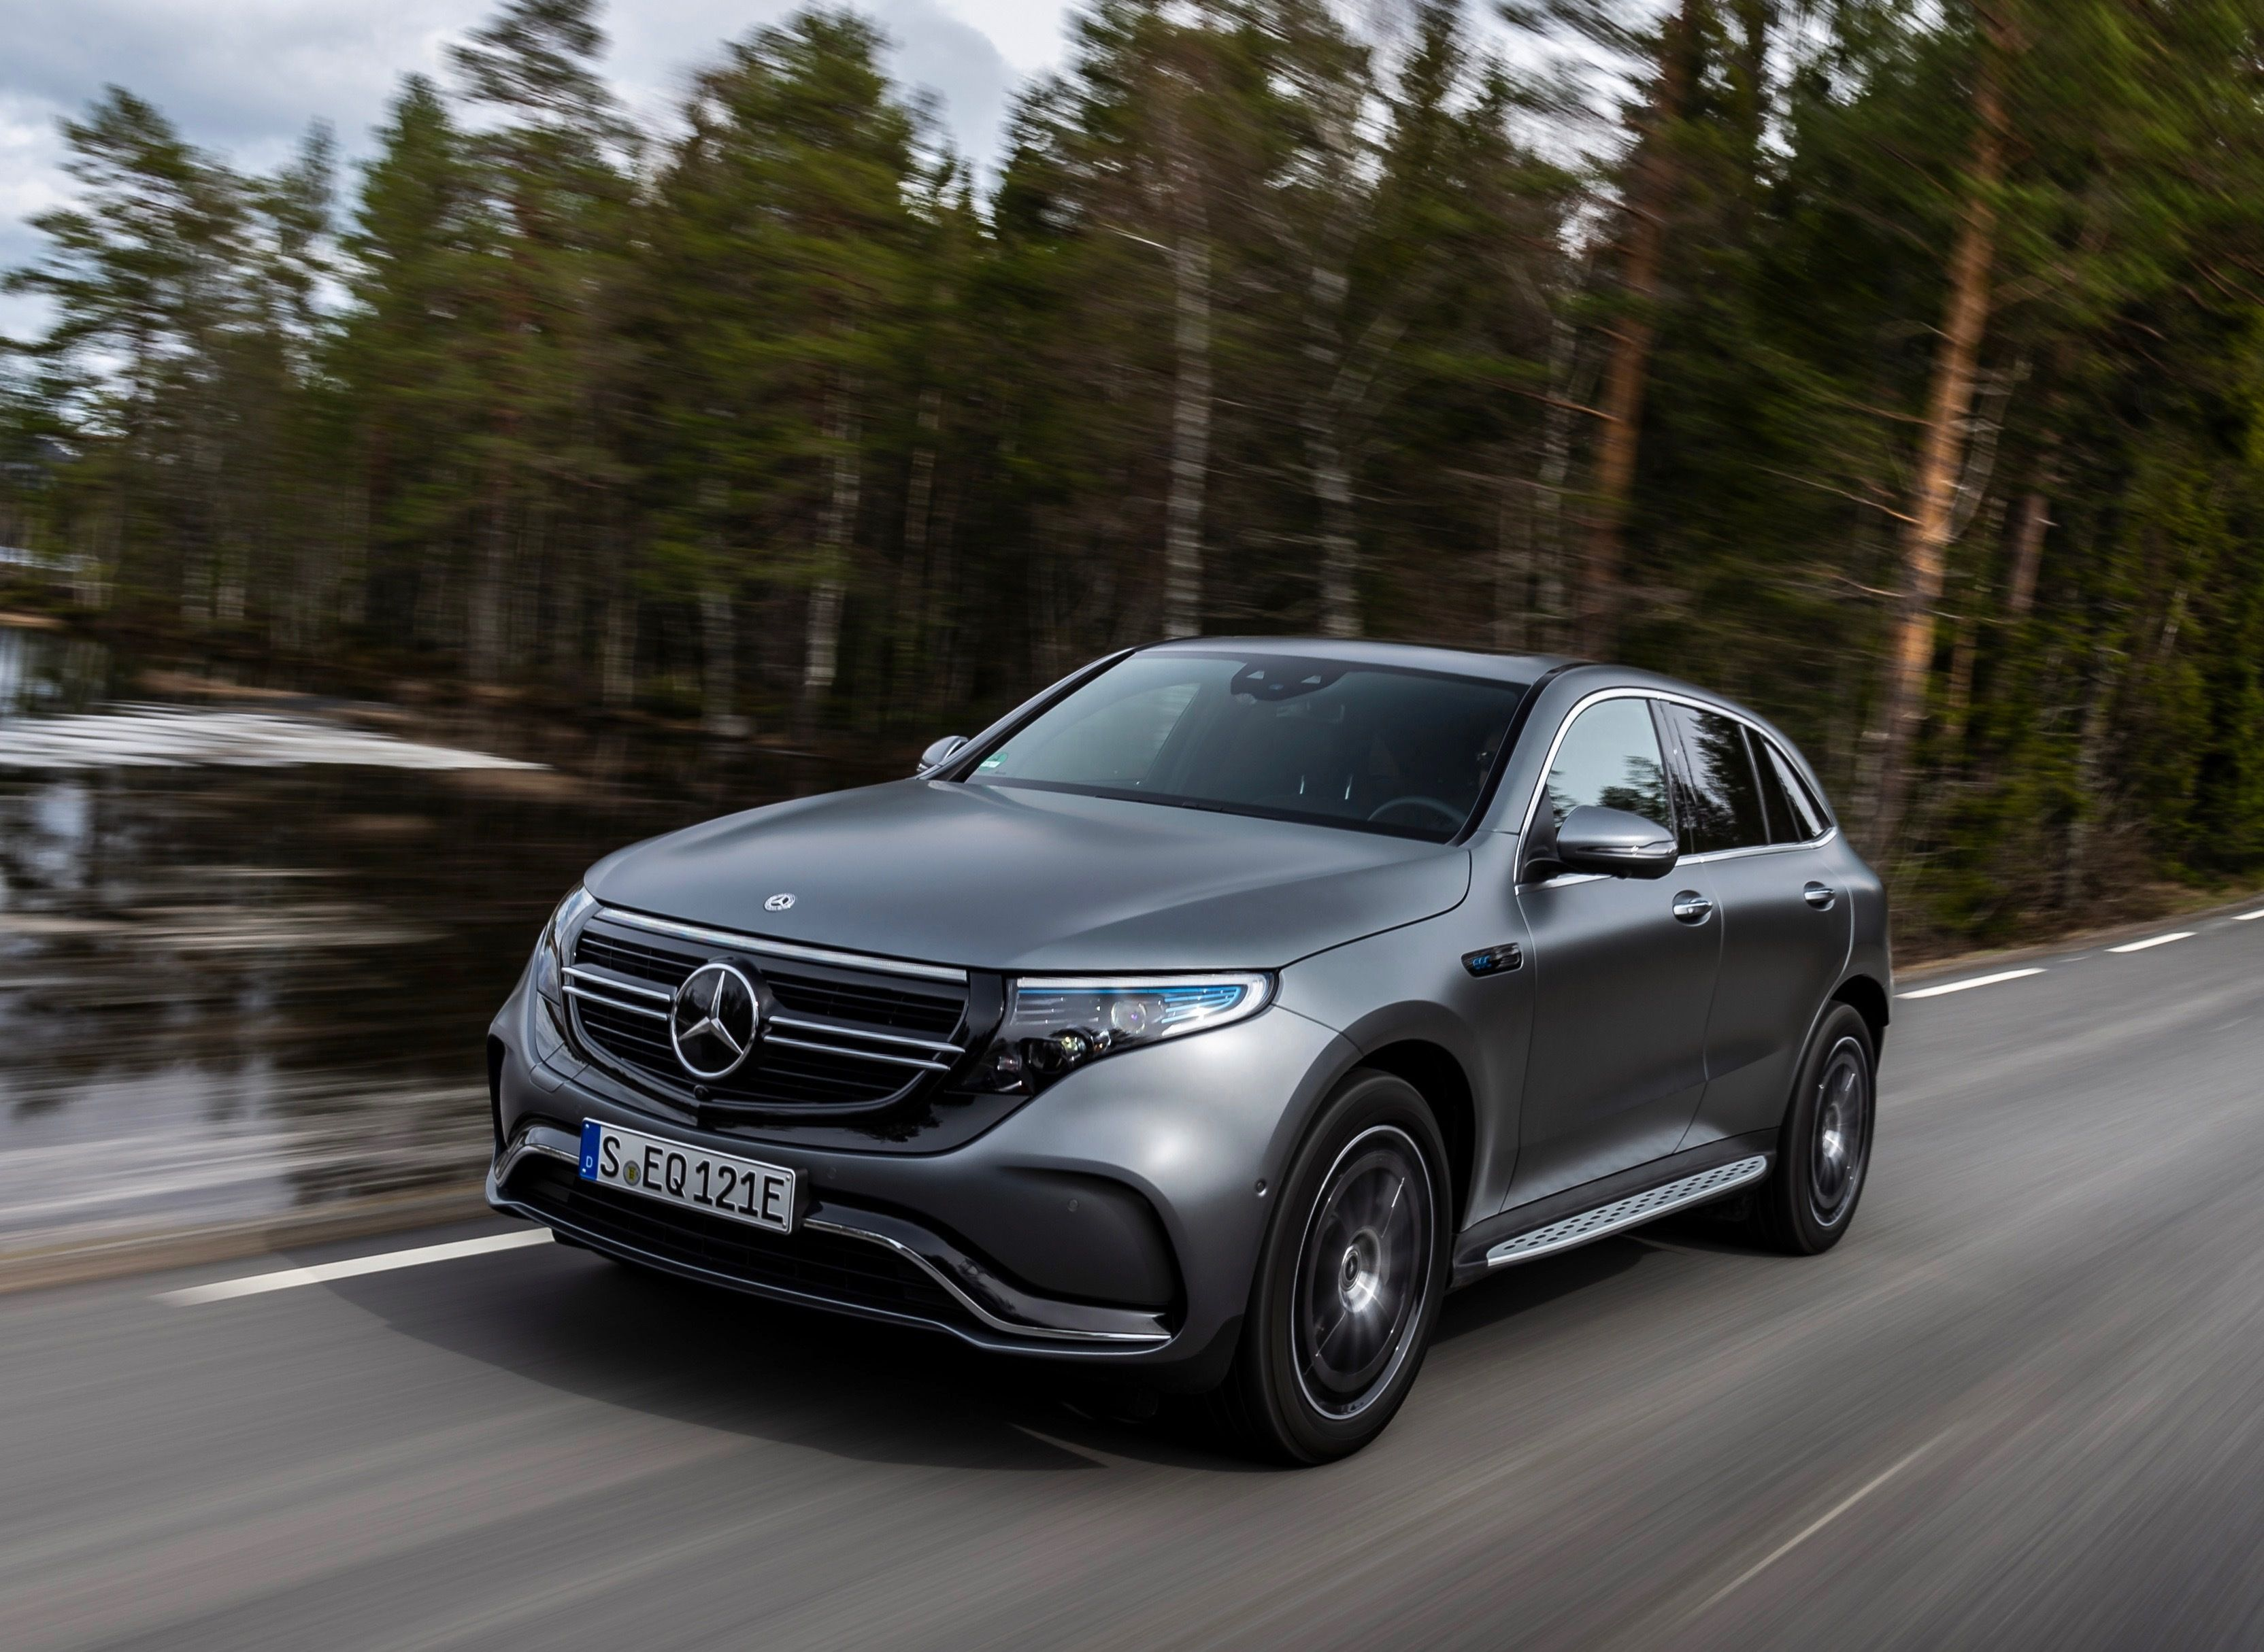 Amg Line Of The New Fully Electric Mercedes Benz Eqc Mercedes Benz Eqc 400 4matic Stromverbrauch Kombiniert 20 8 1 Mercedes Benz Price Mercedes Benz Benz